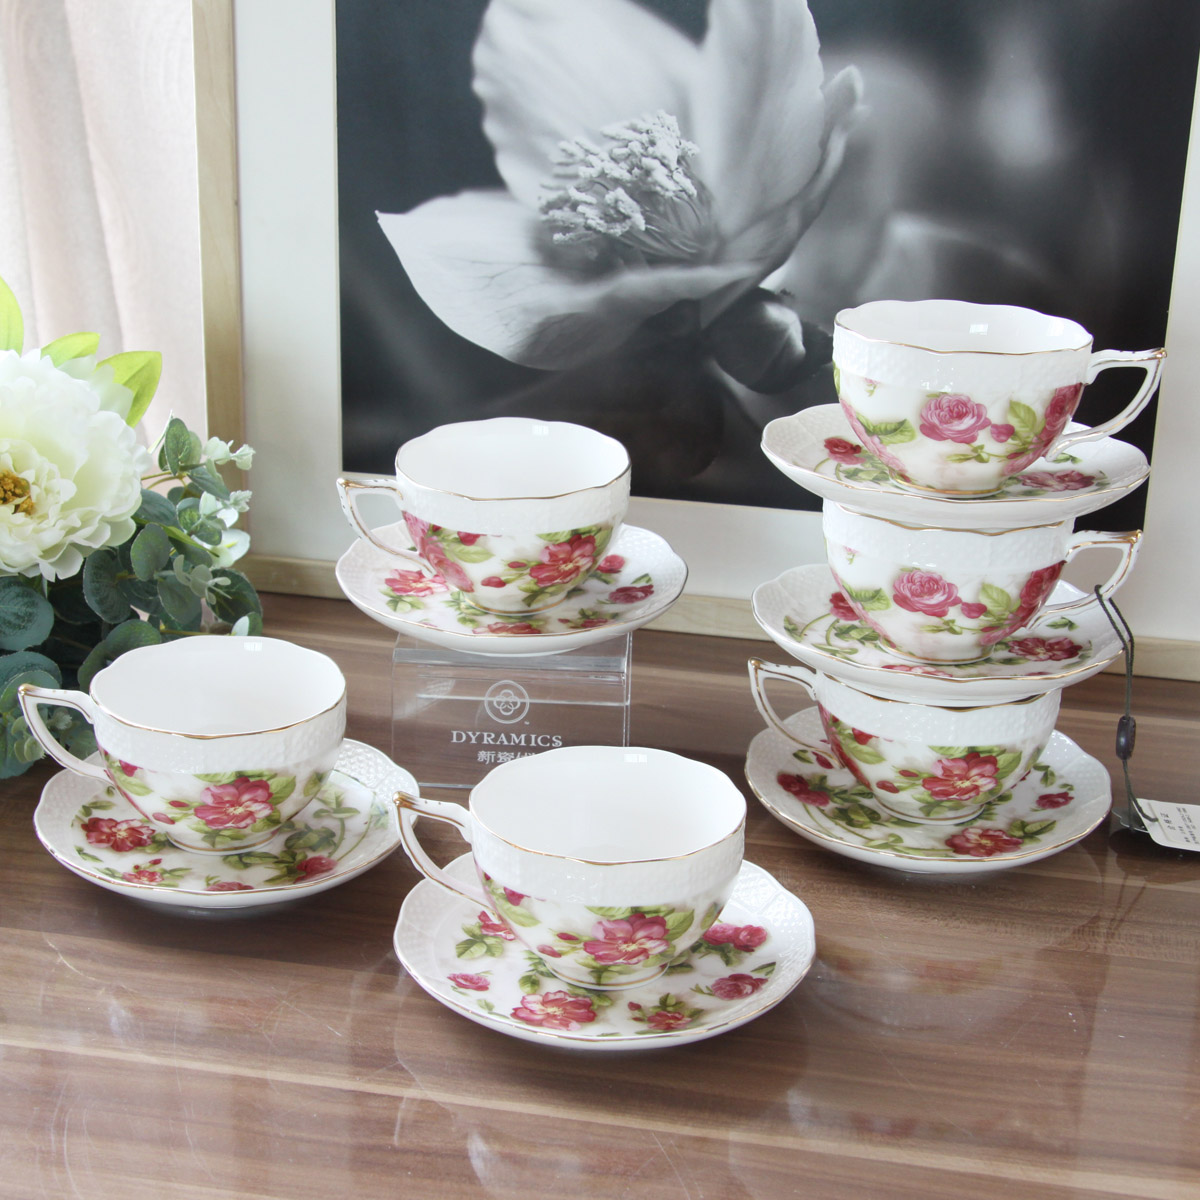 The new generation of porcelain ceramic british european coffee cup coffee cup and saucer british tea liu jiantao gift box wedding gift